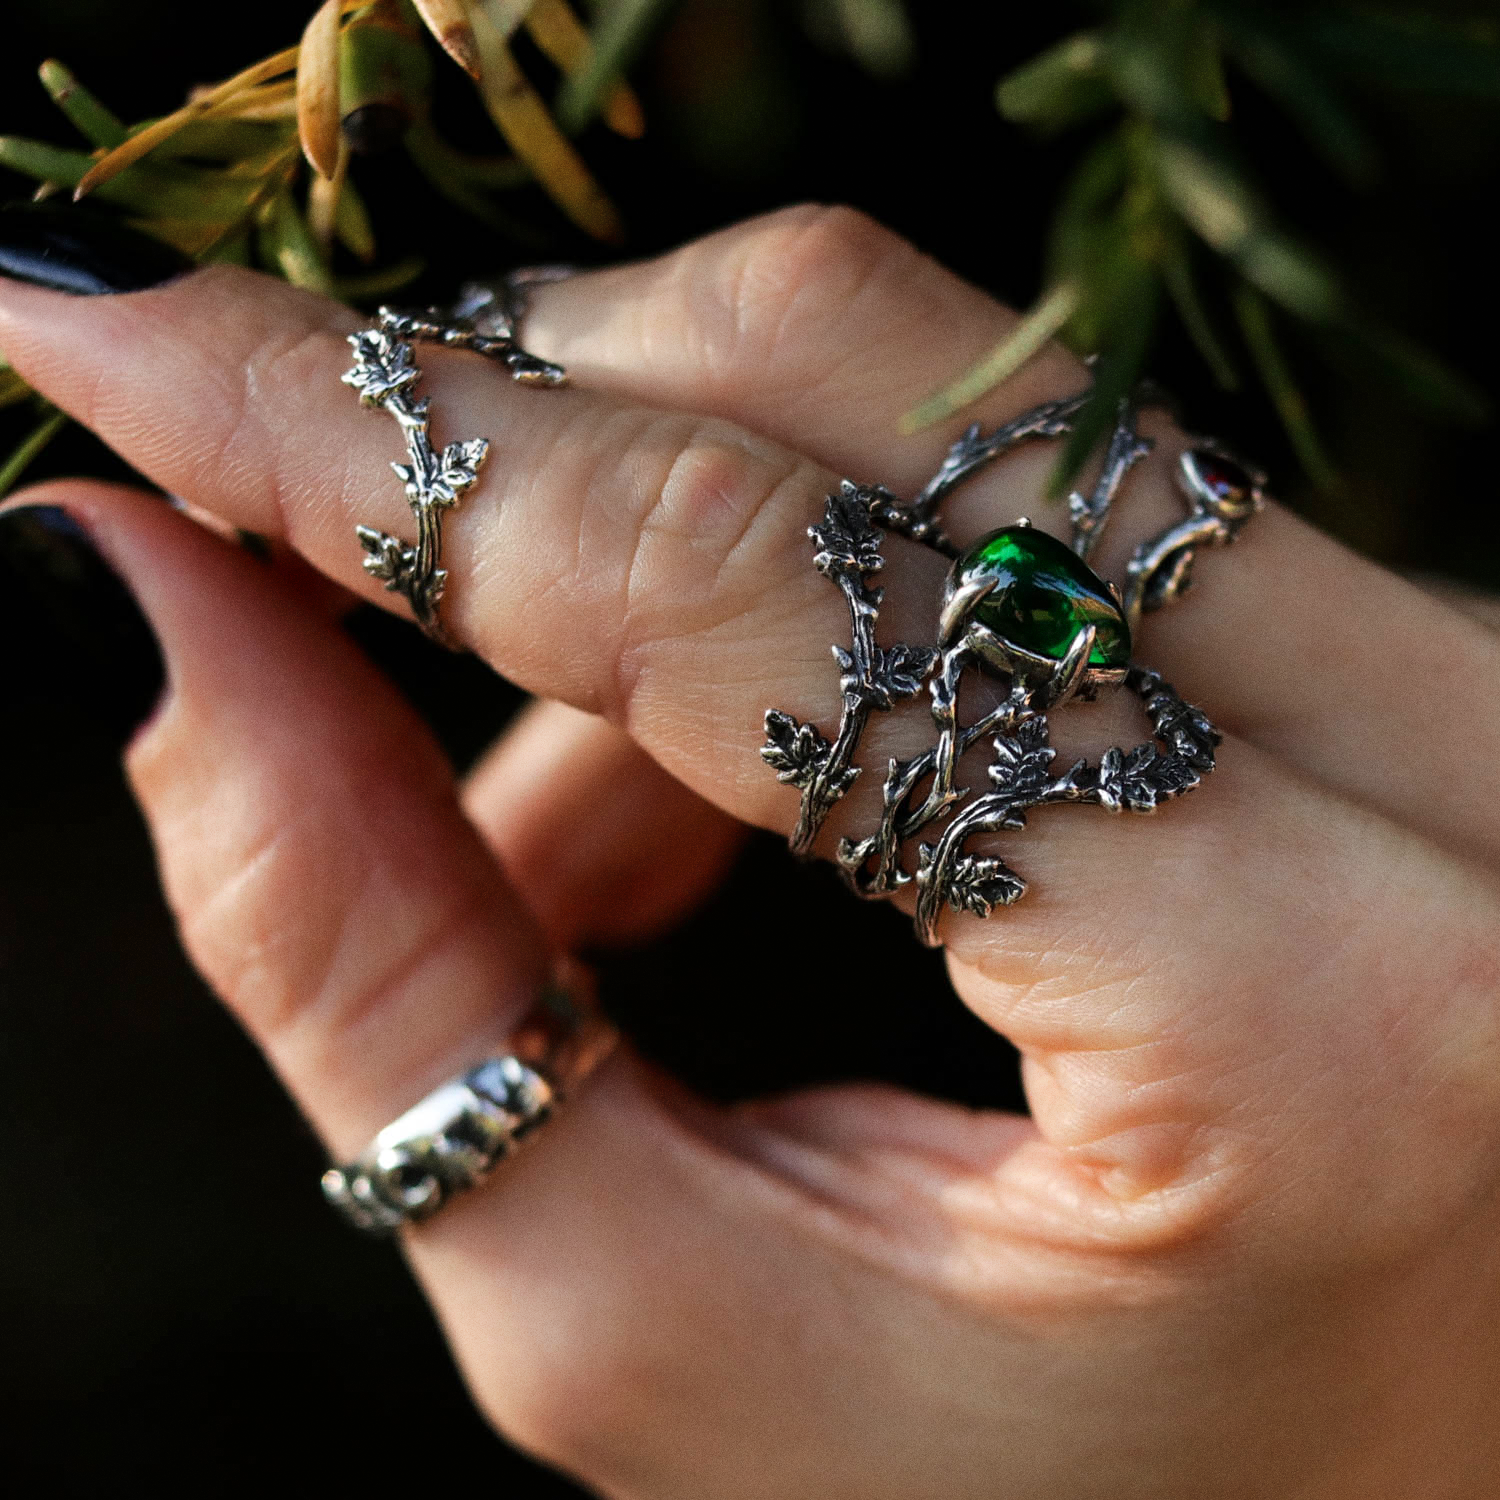 Forbidden Love Green Gothic Thorn Ring